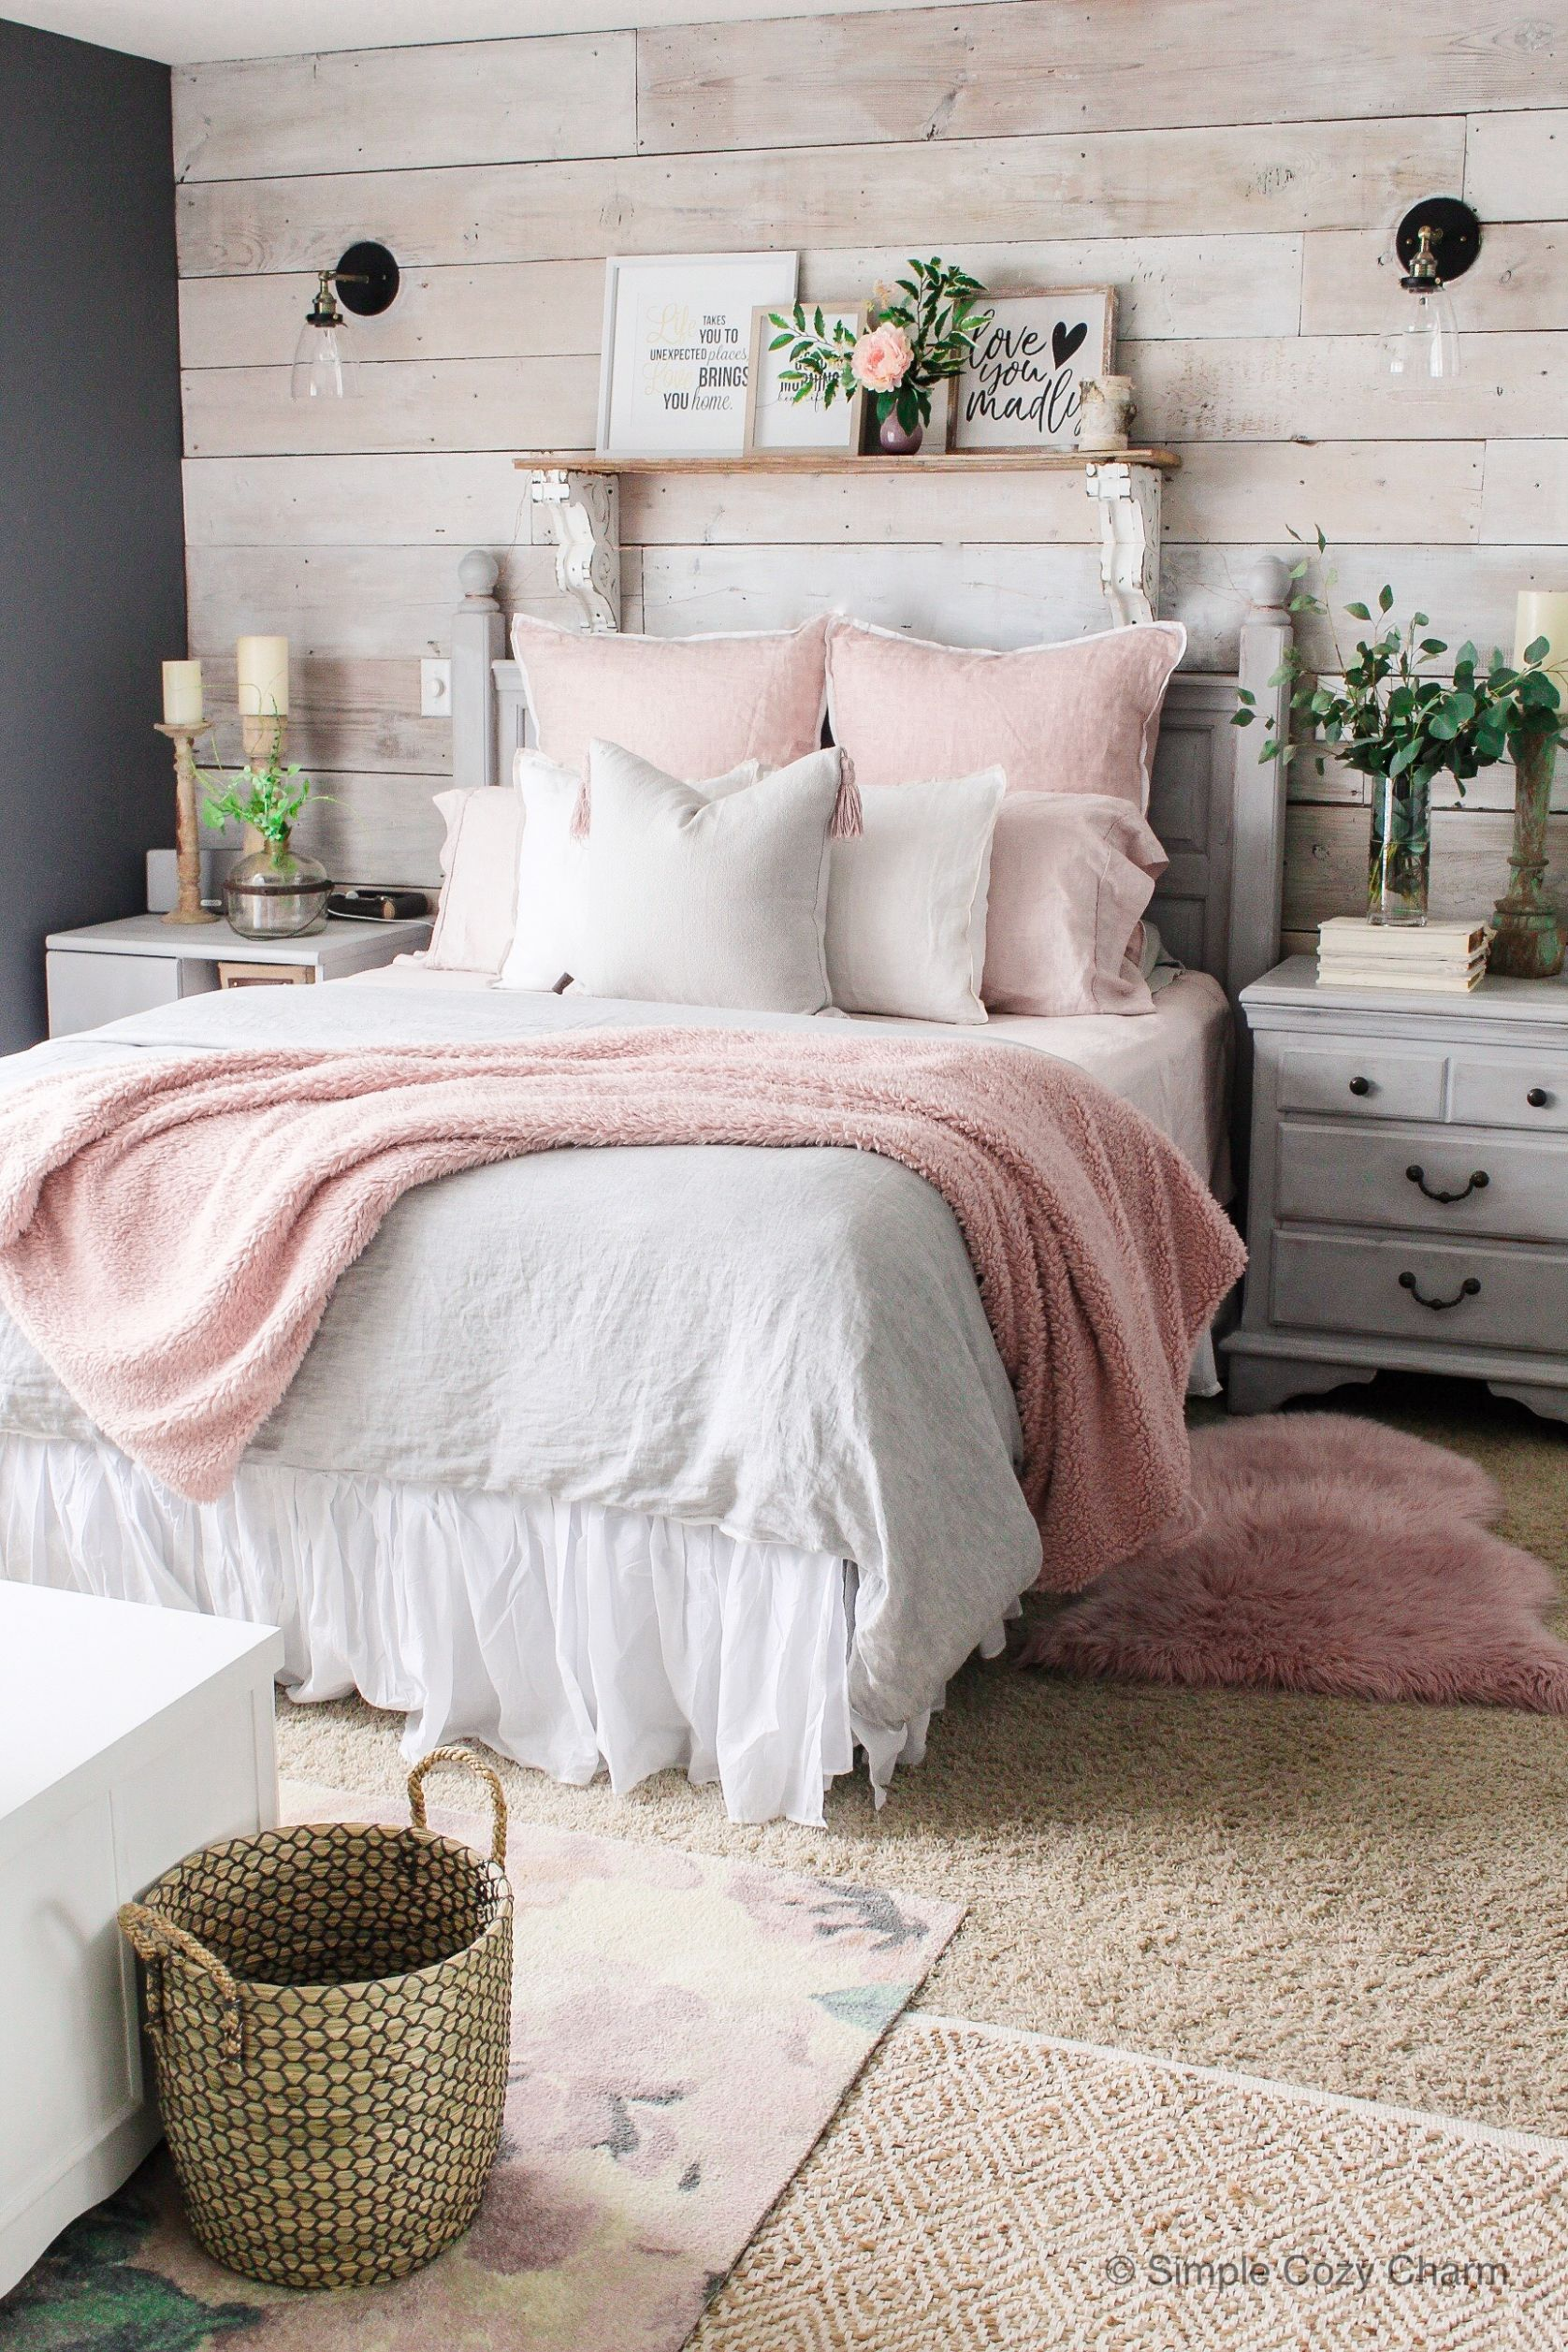 Charming But Cheap Bedroom Decorating Ideas • The Budget Decorator - bedroom ideas easy